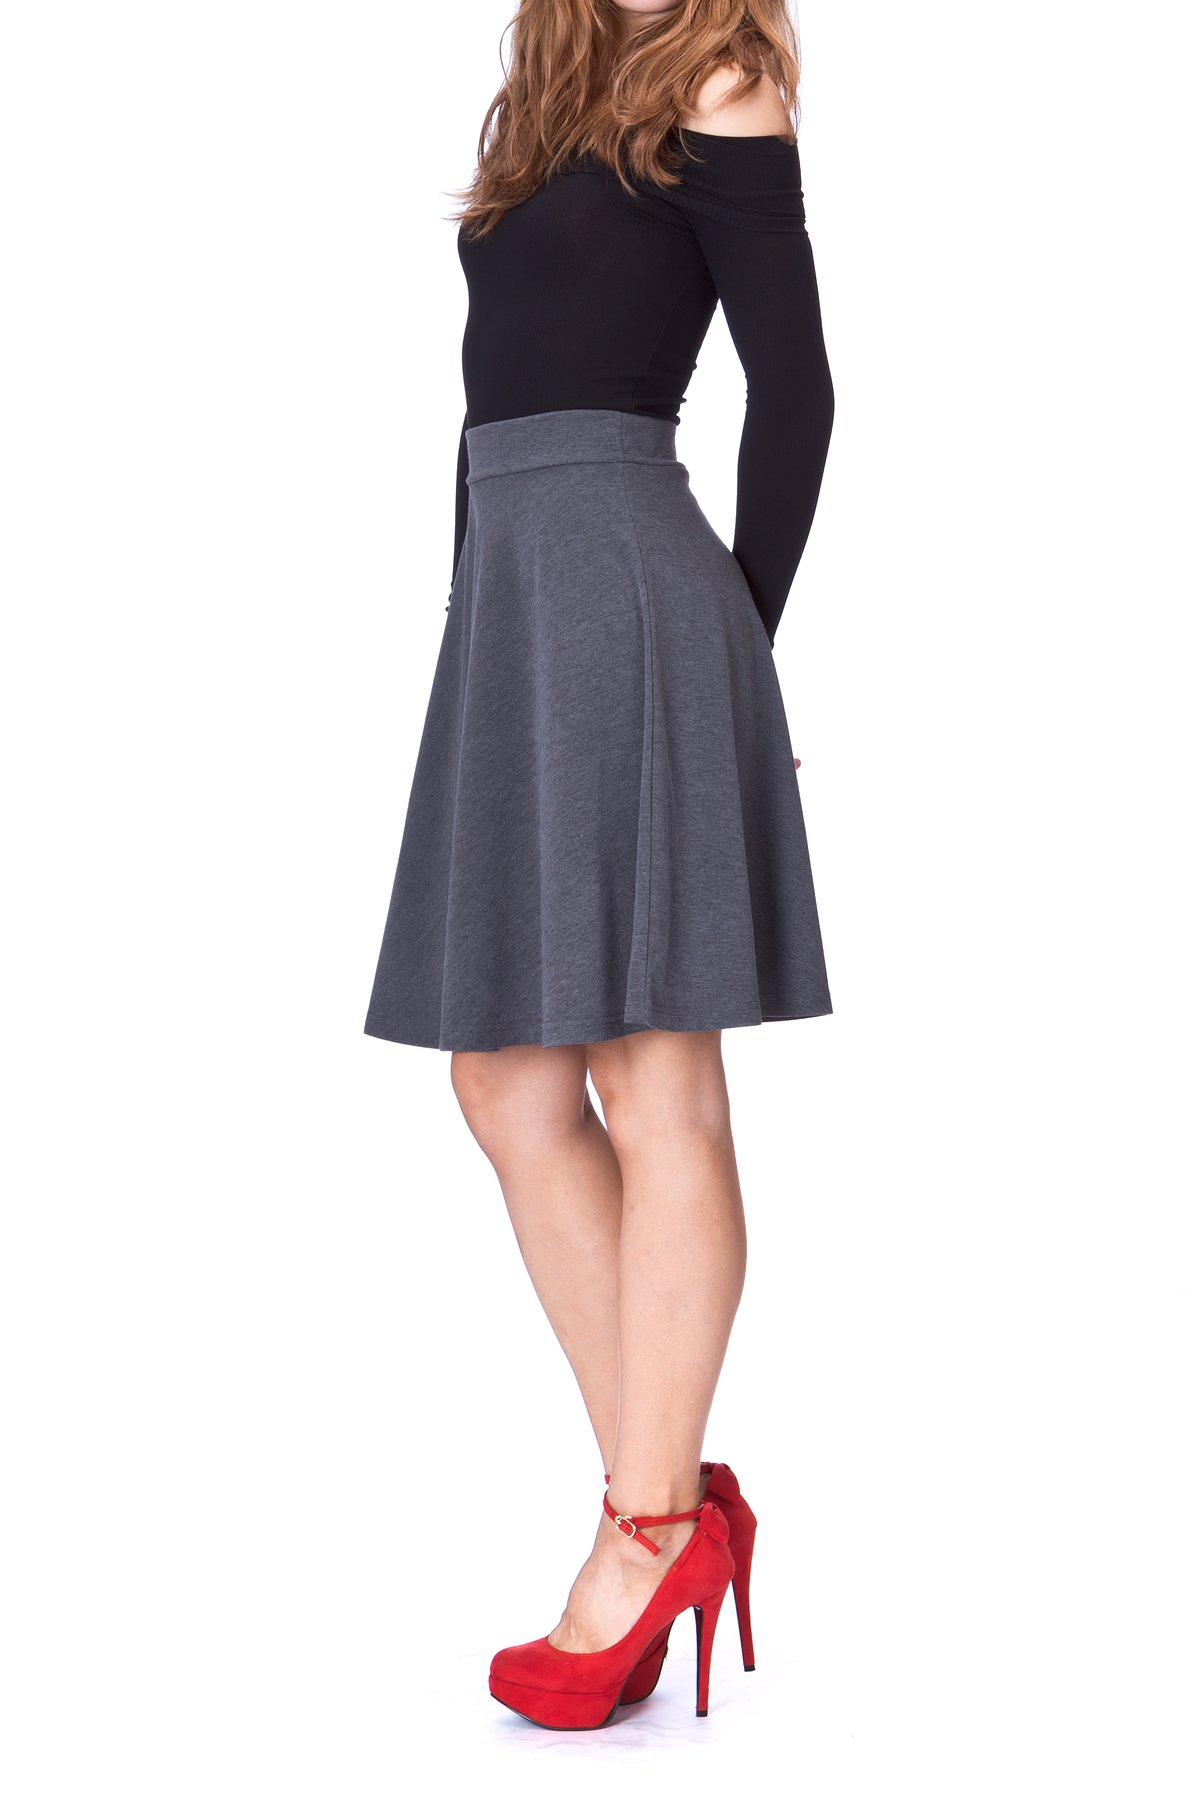 Simple Stretch A line Flared Knee Length Skirt Charcoal 3